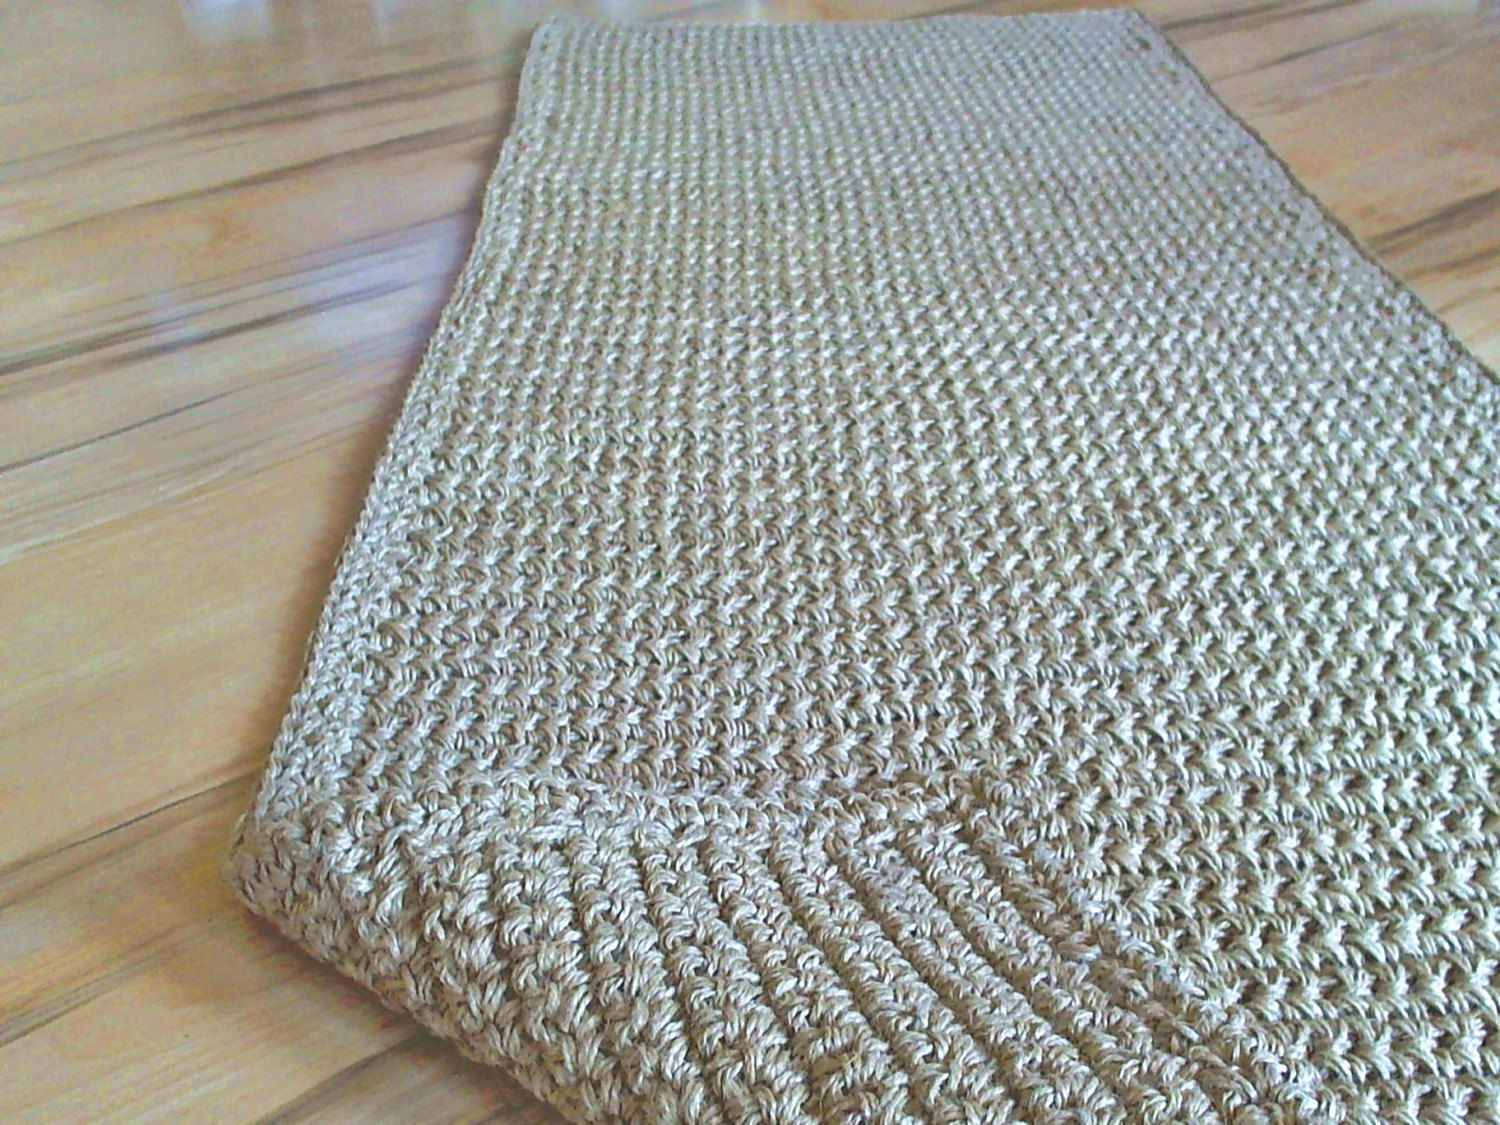 Rug 10 Ft Natural Hallway Runner Handmade Jute Rope By Magicbycrochet On Etsy